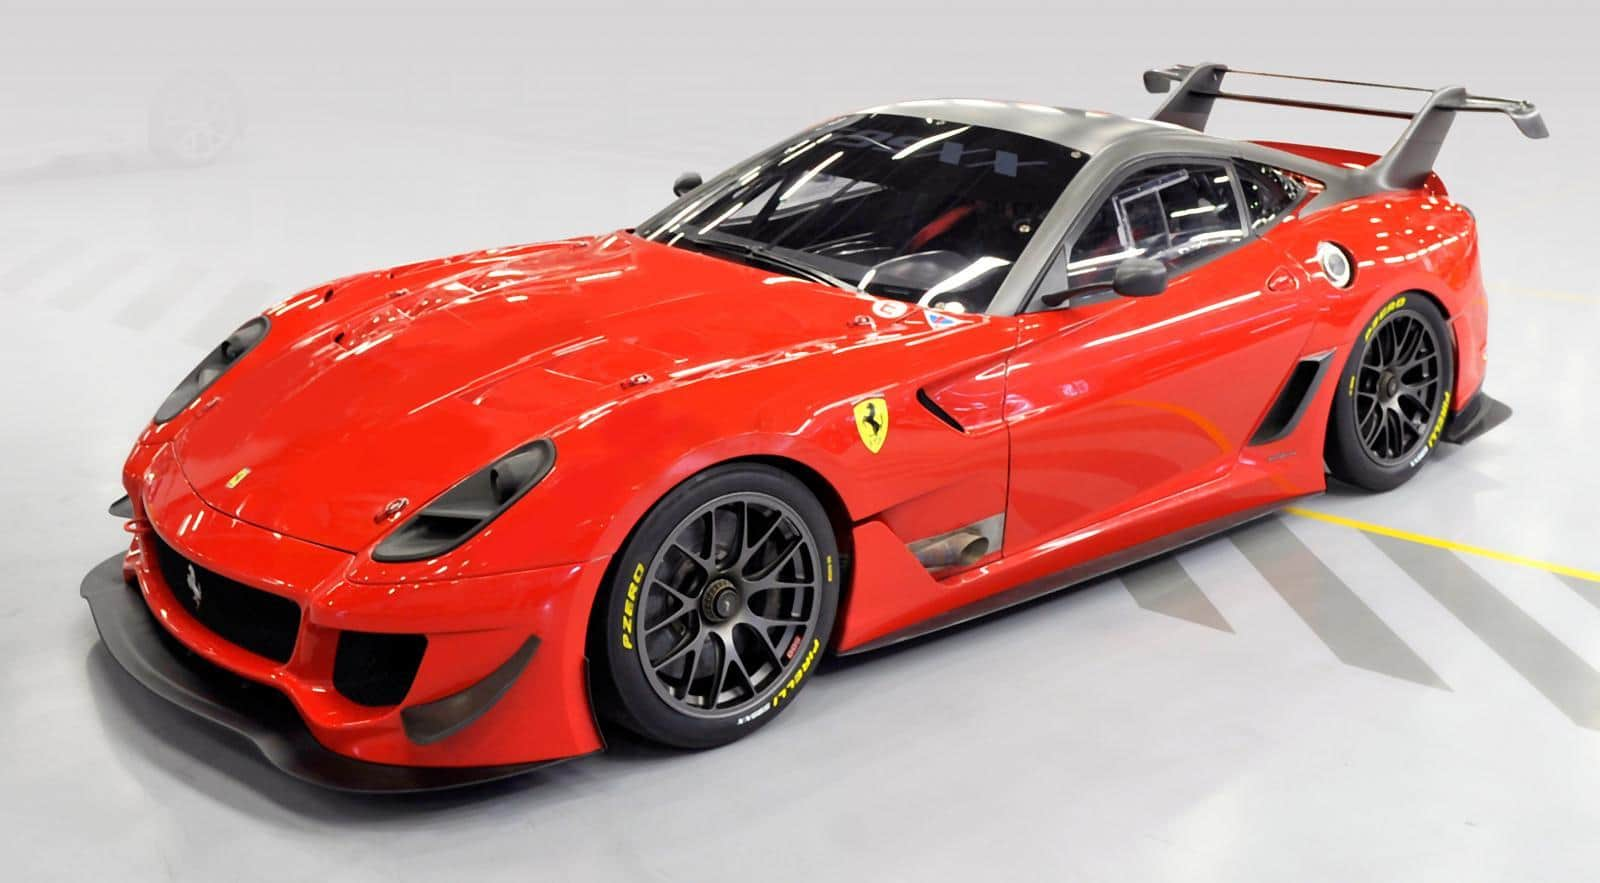 remote control jets for sale with One Off Ferrari 599xx Evo Sells For E1 4million At Auction on Large Scale RC Planes 11 as well Model Jet Engines as well 39814839 furthermore Giant Scale Rc Airplanes moreover One Off Ferrari 599xx Evo Sells For E1 4million At Auction.